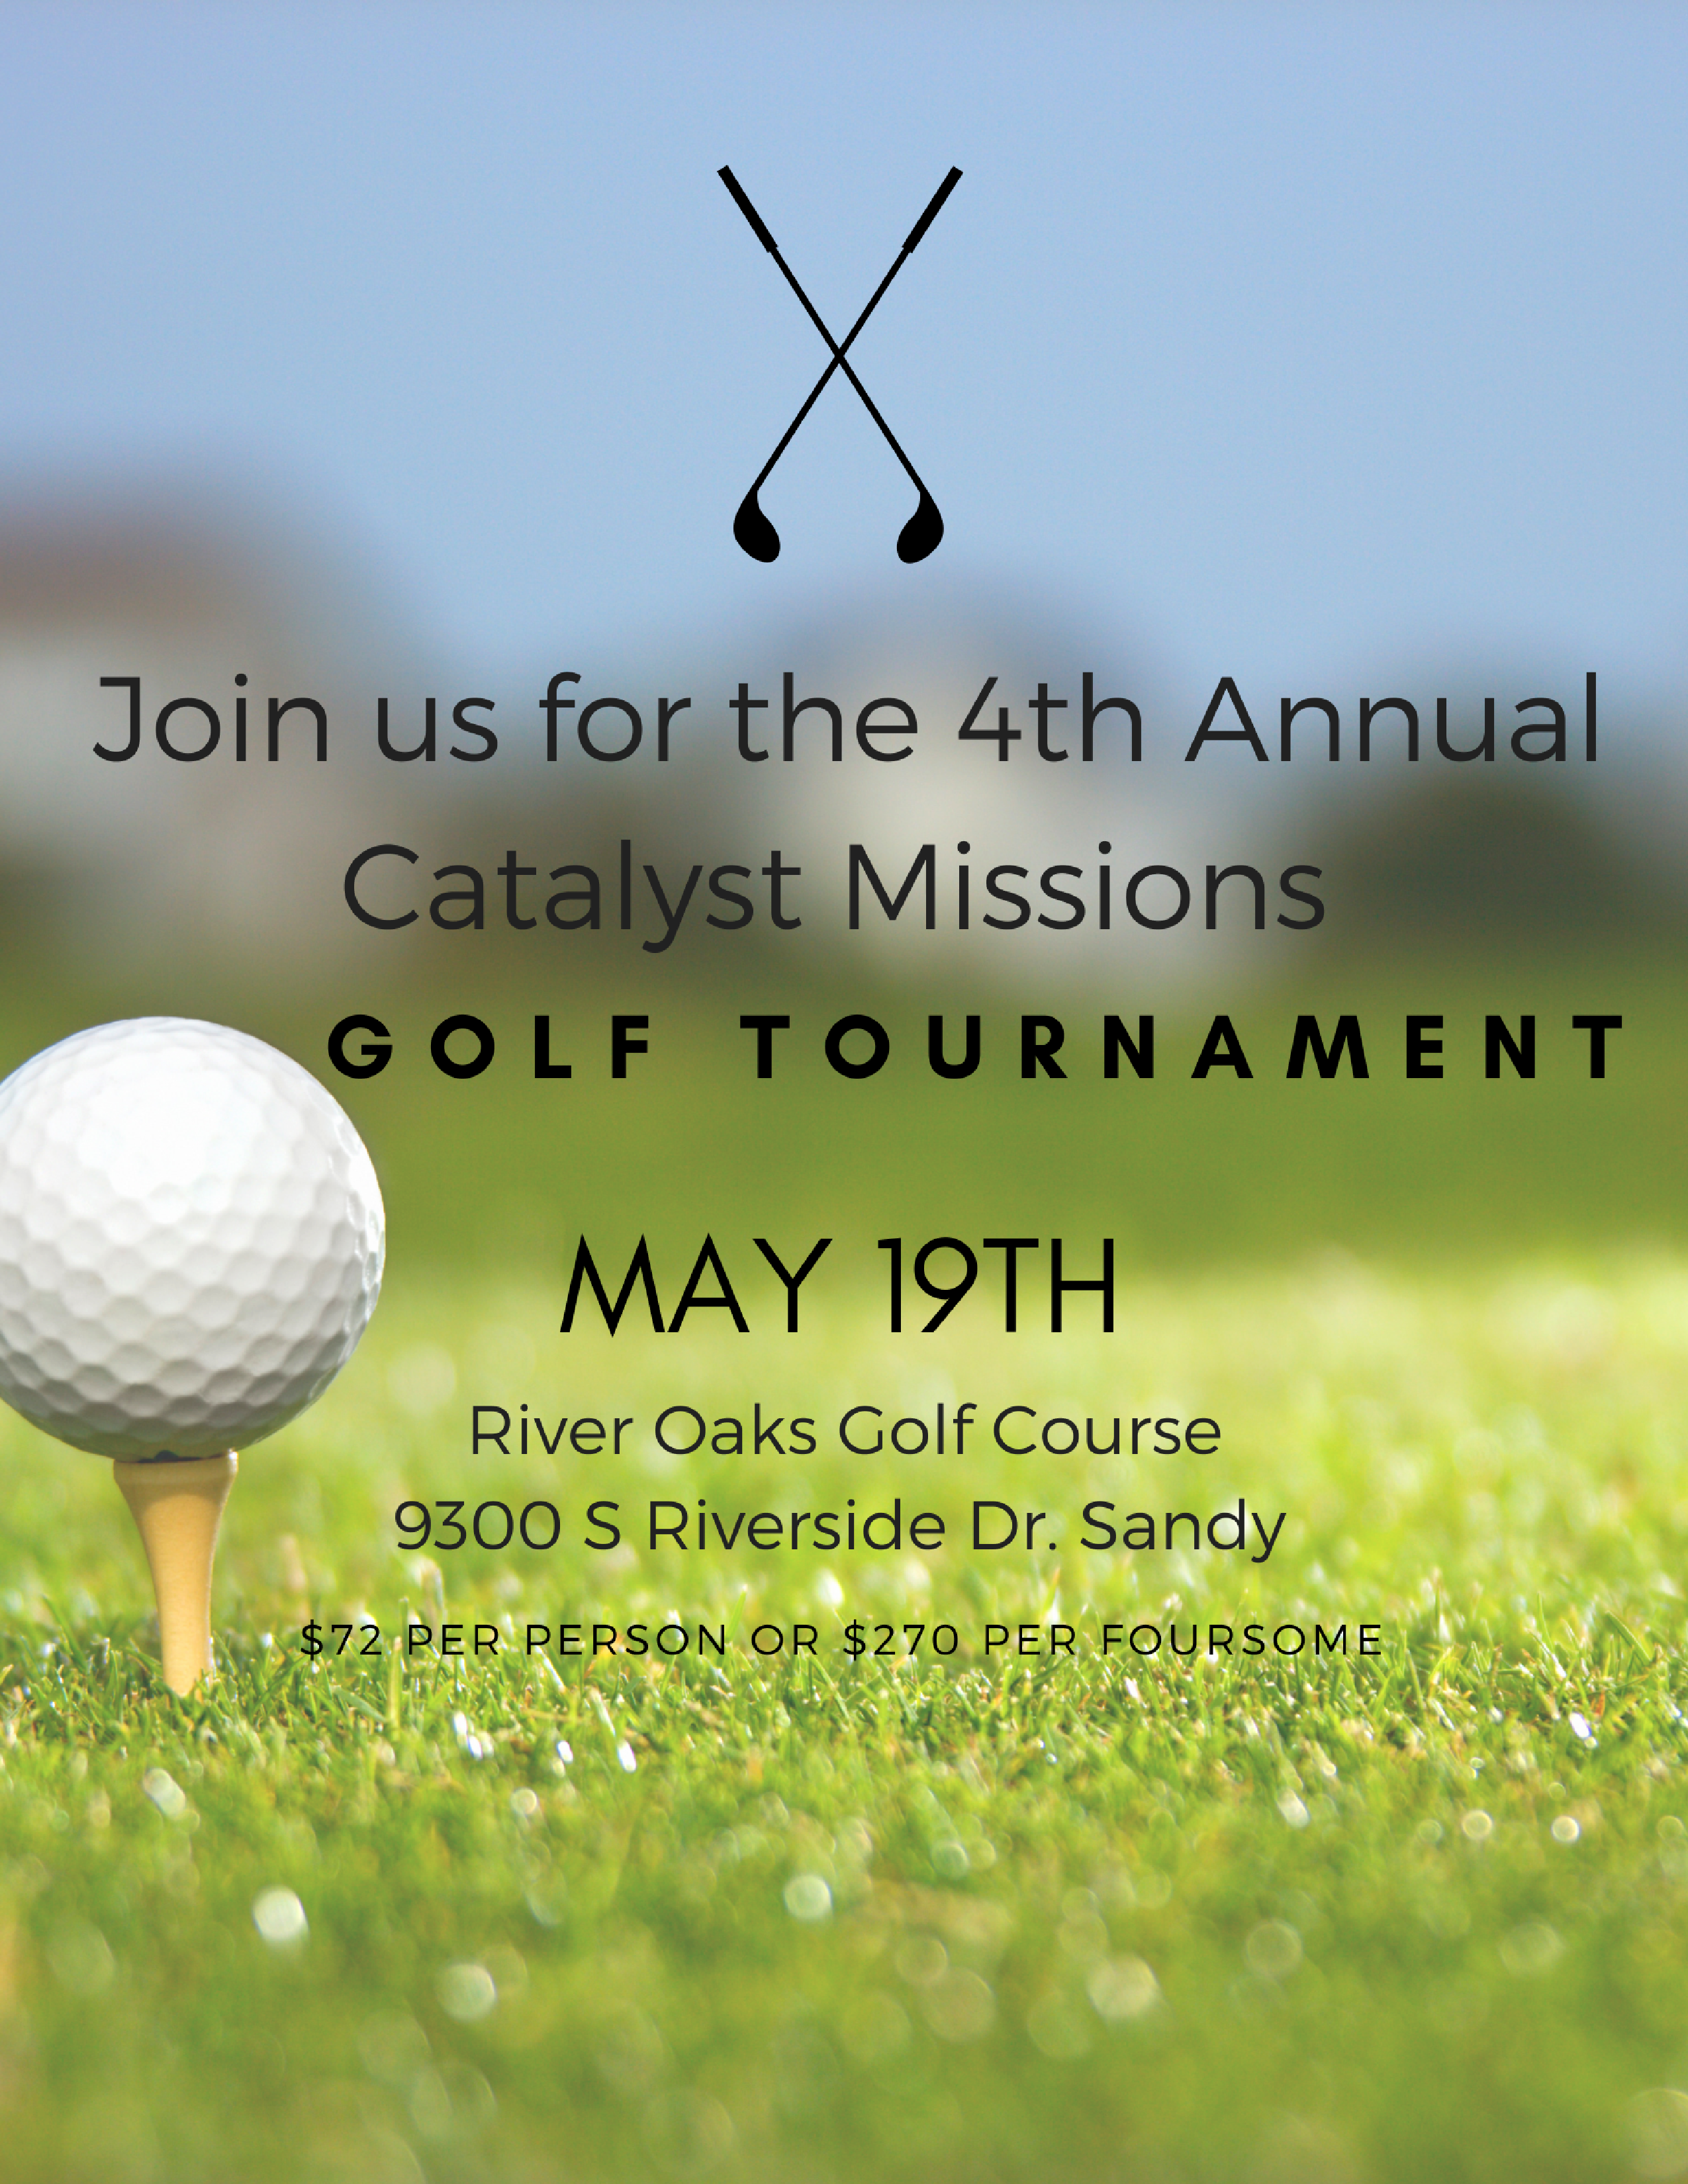 4th Annual Catalyst Missions Golf Tournament